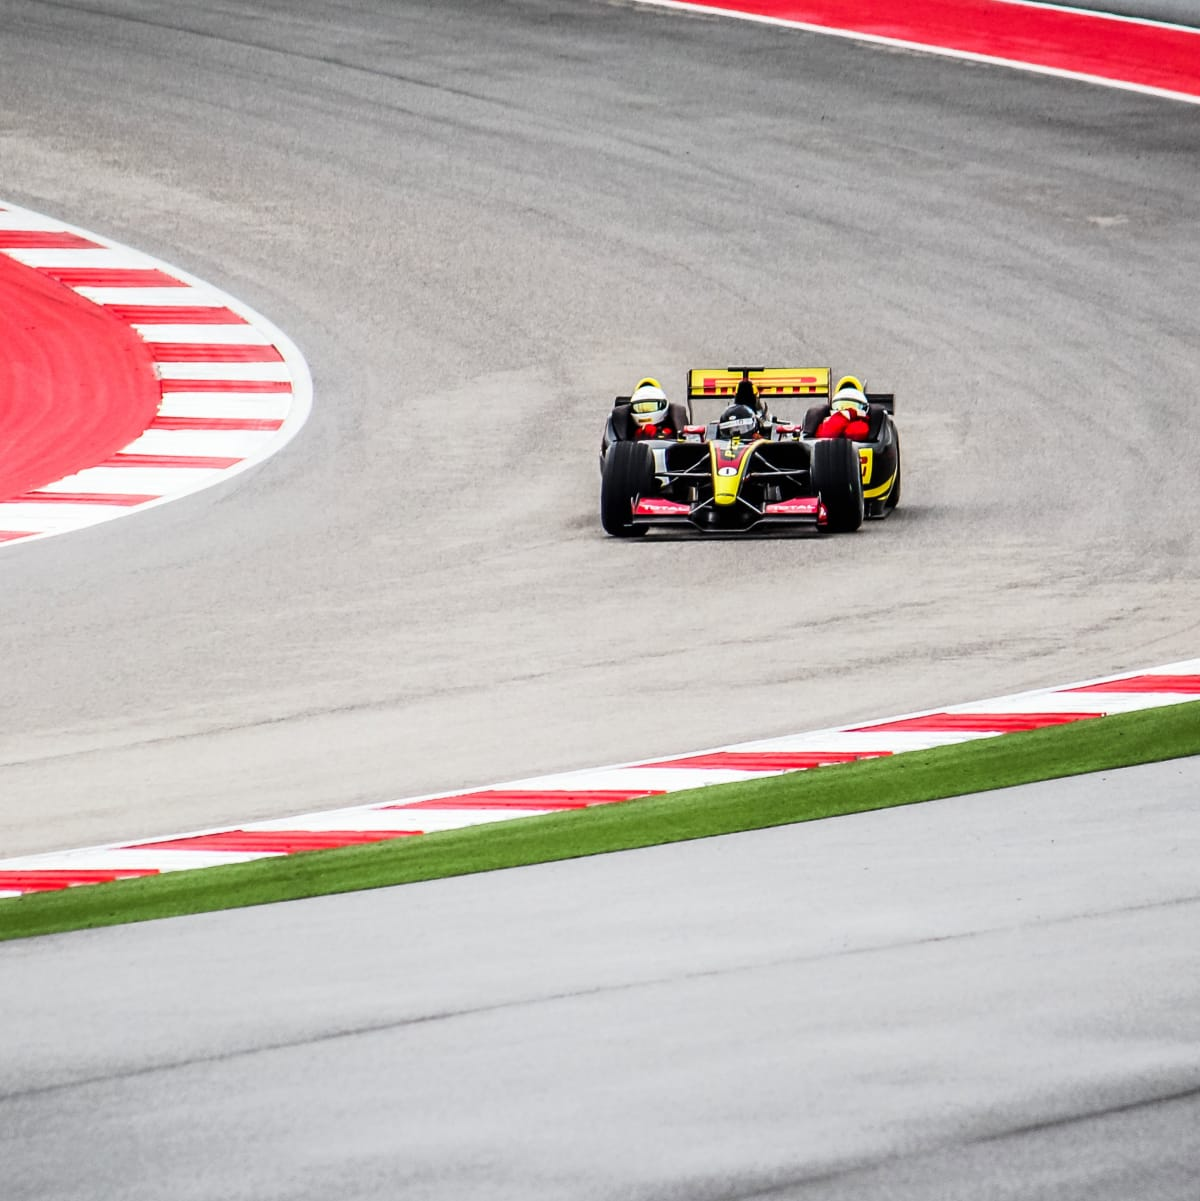 formula 1 ride along coming out of a turn for Ride Drive Give promotion